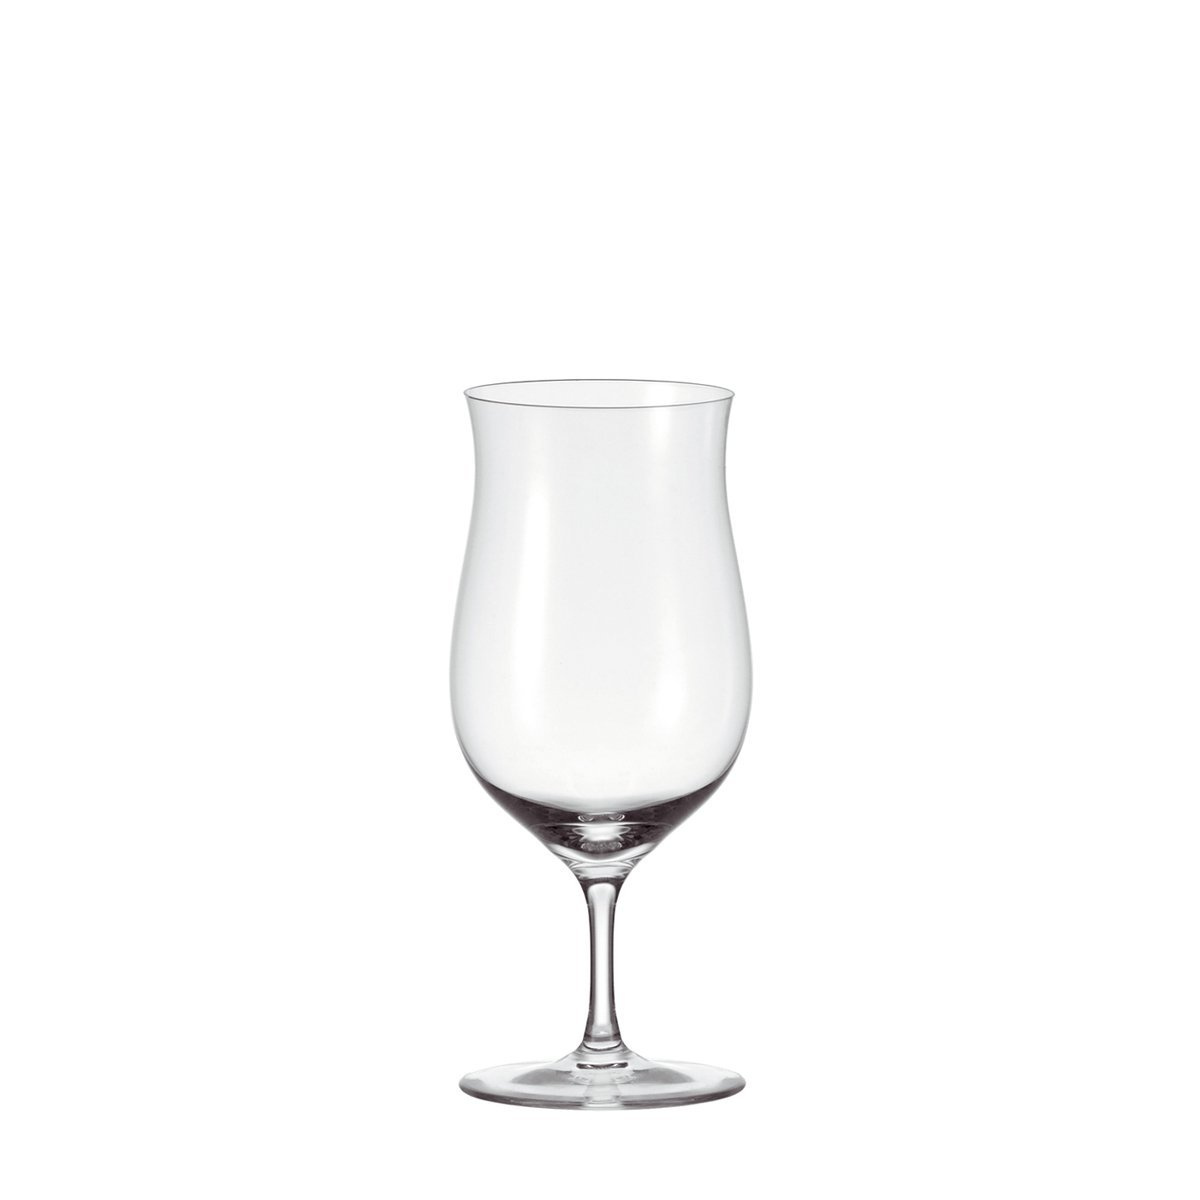 Cocktailgläser cocktail gläser leonardo cocktailglas cheers 6er set gratis versand